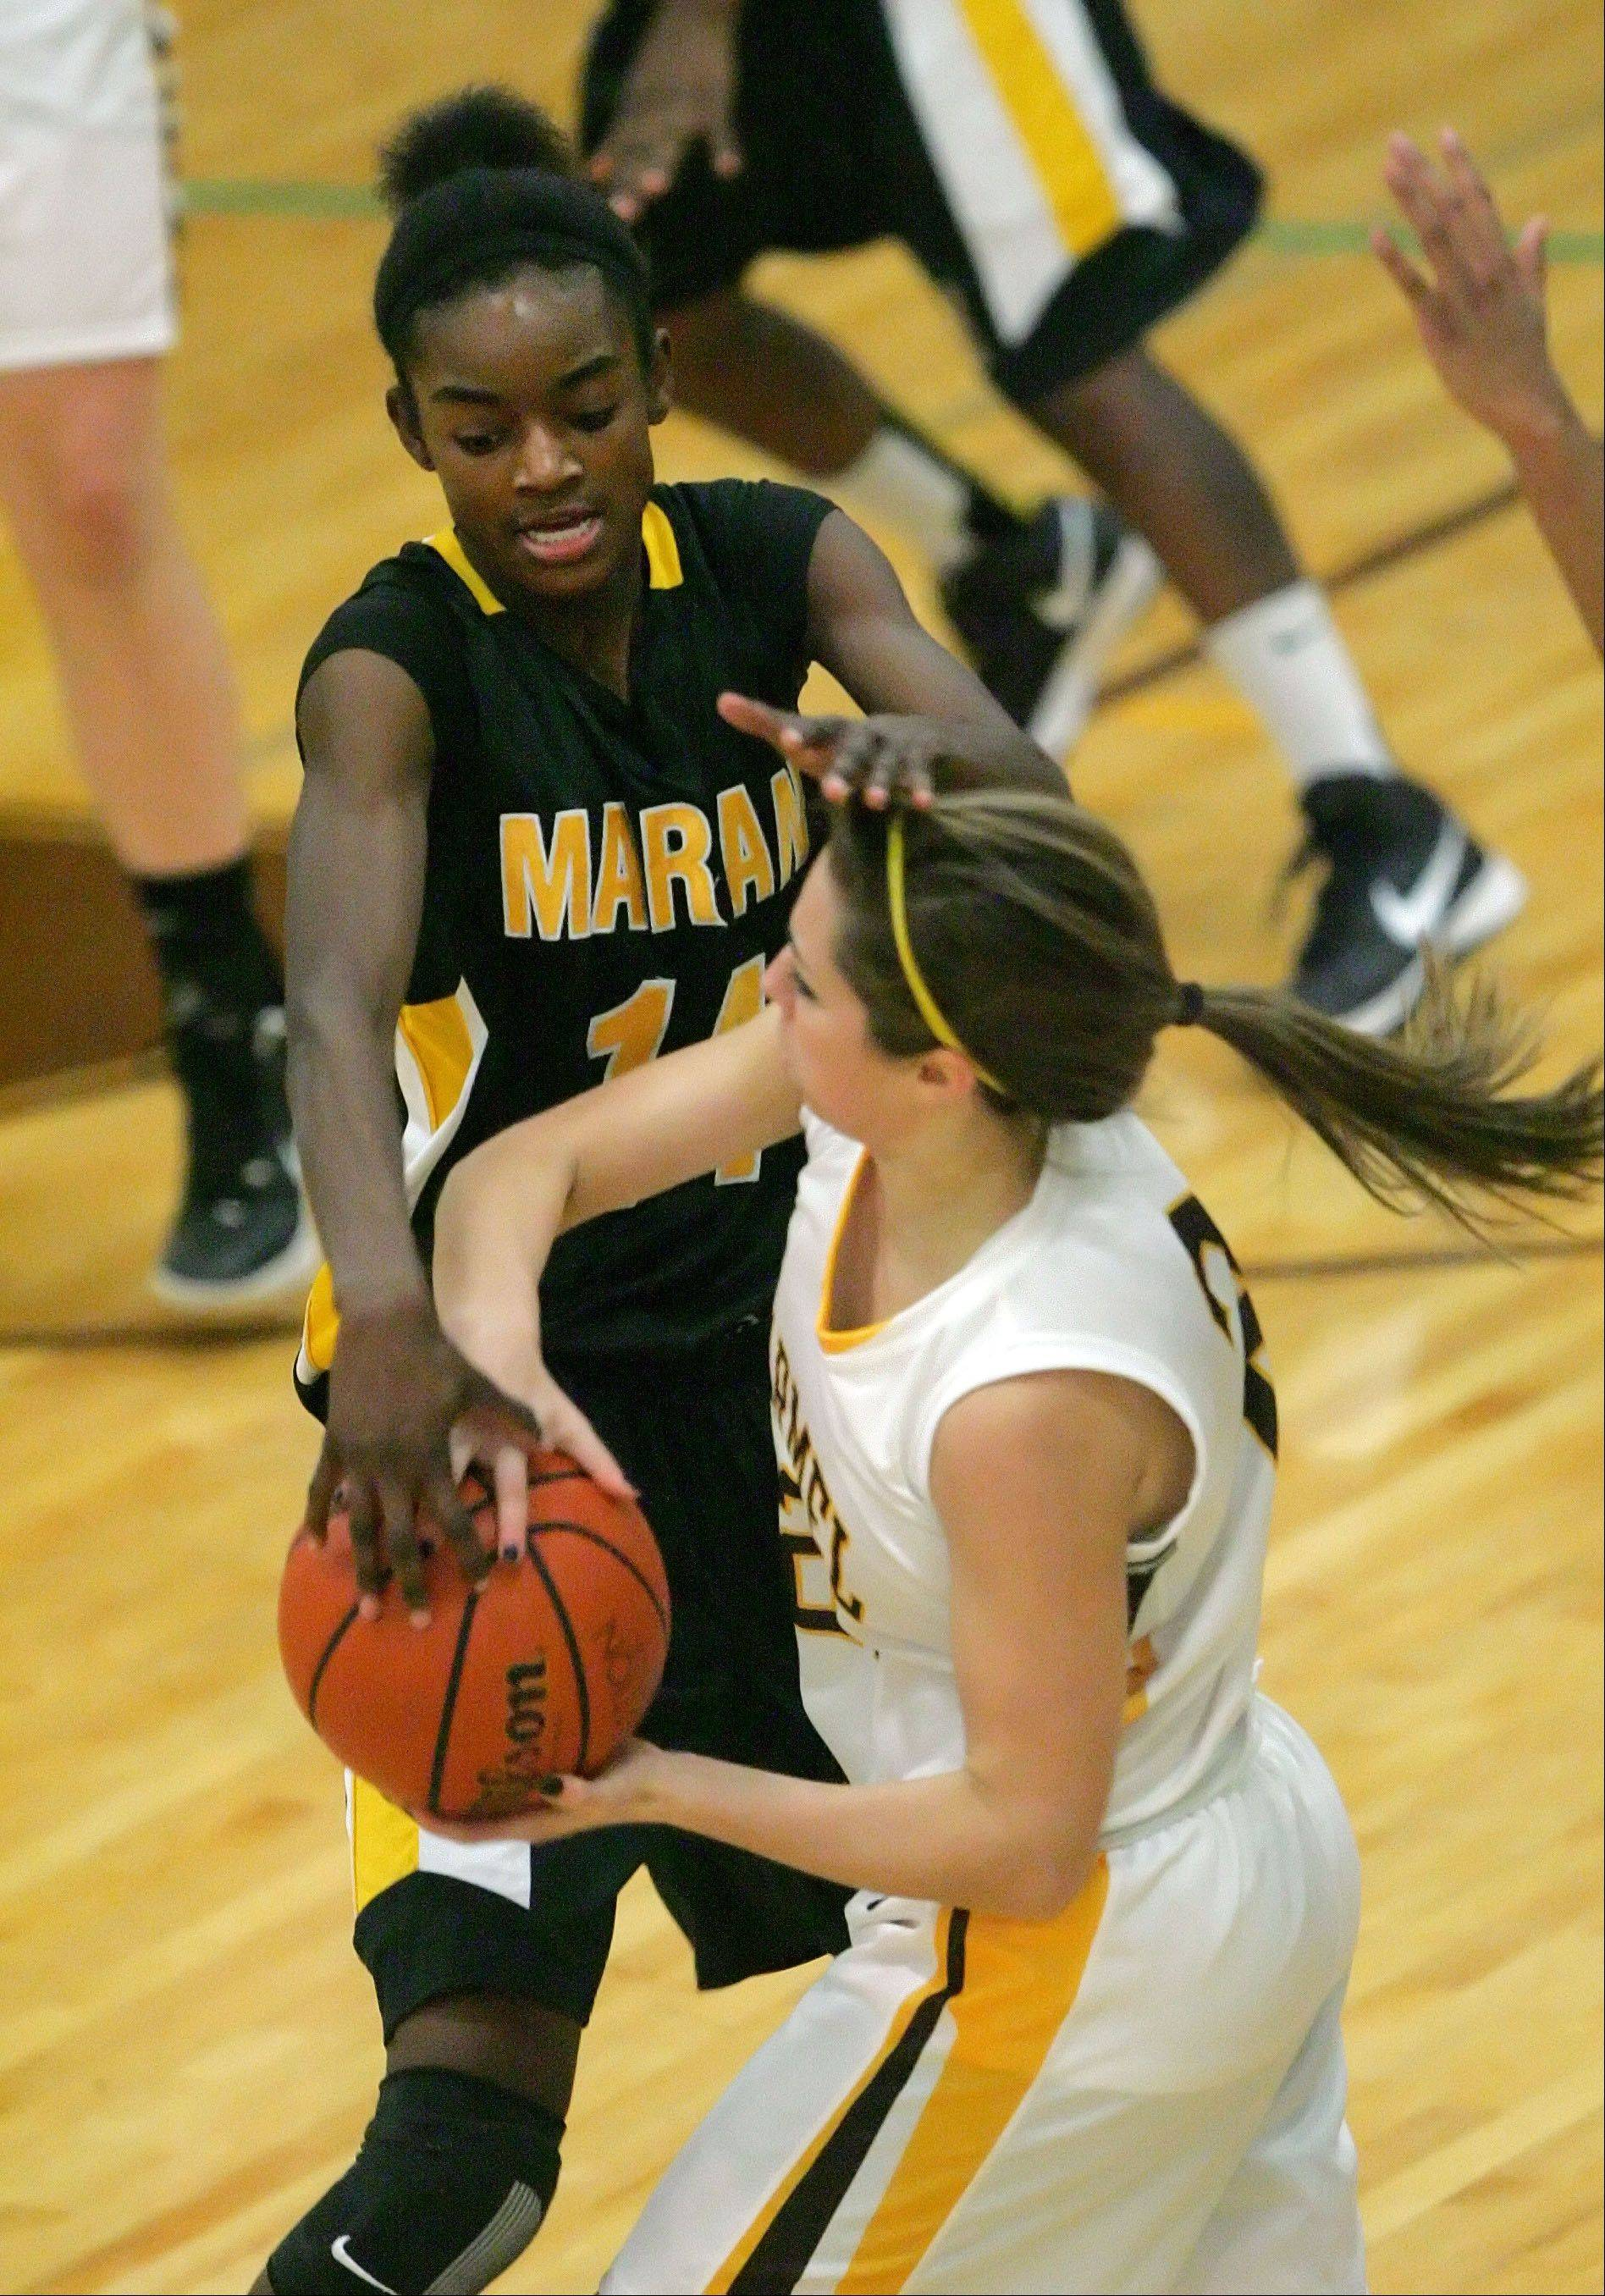 Images from the Marian Catholic at Carmel Catholic girls basketball game Wednesday, Dec. 12 in Mundelein.